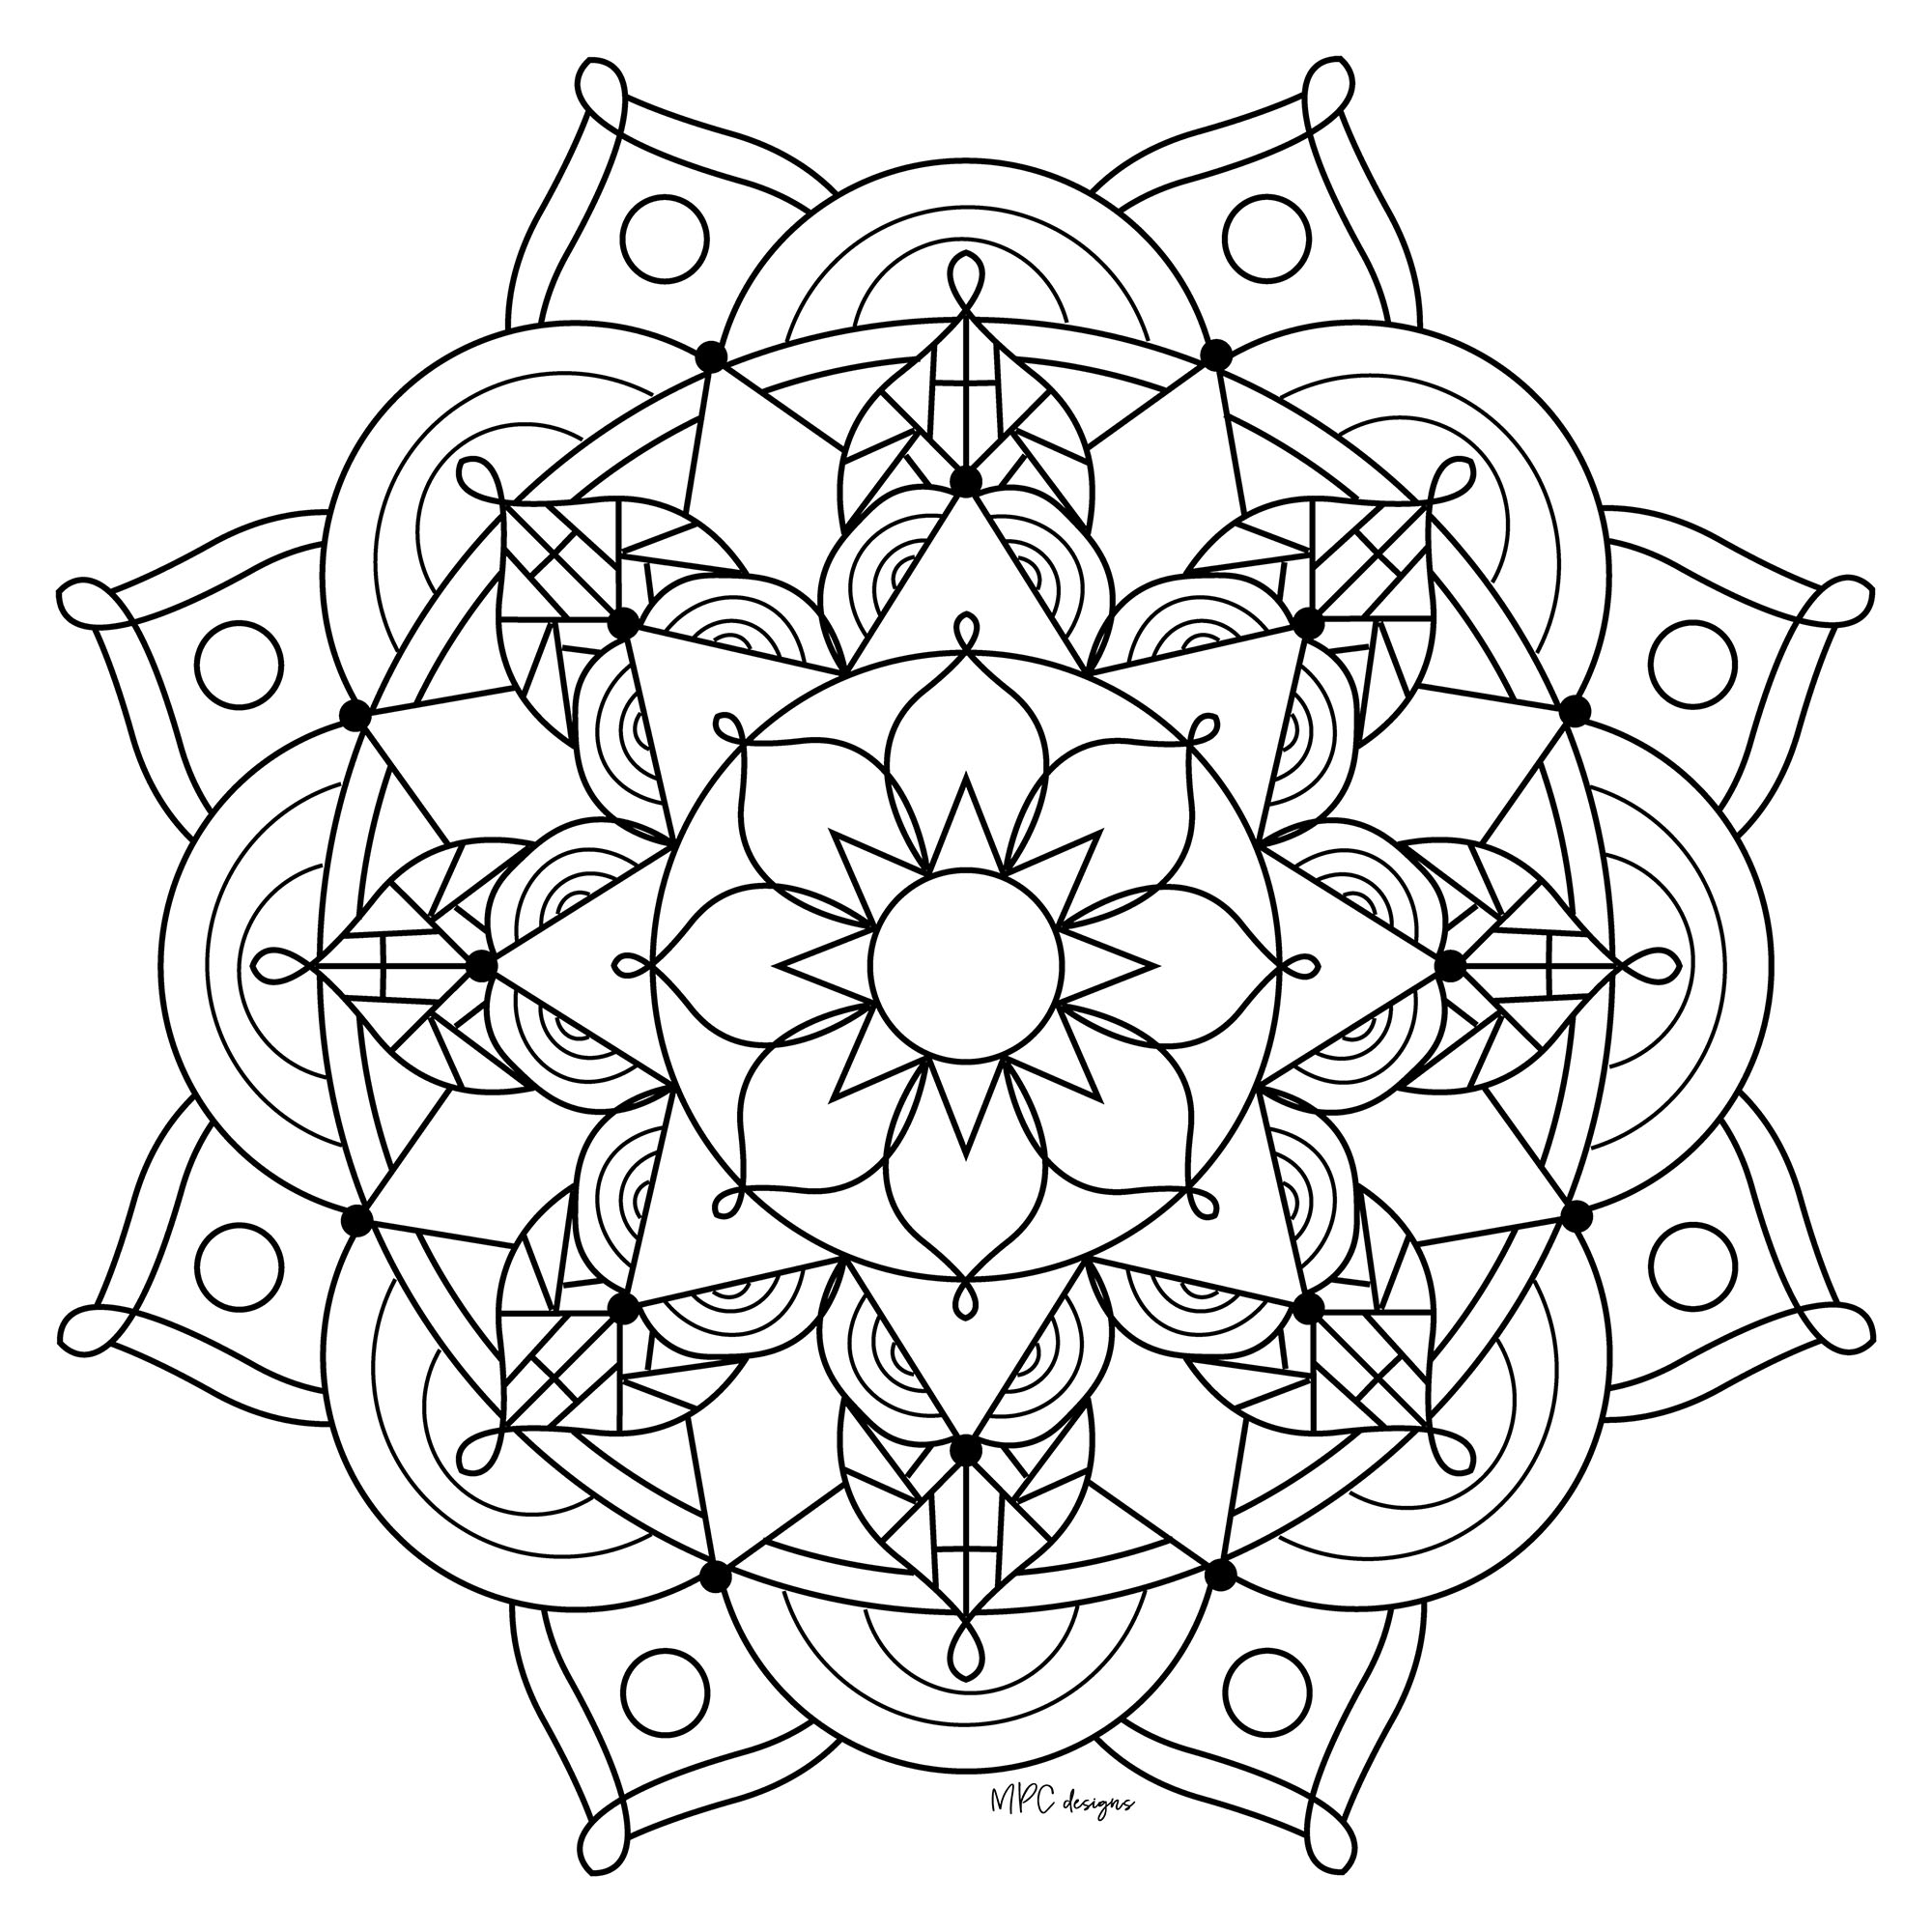 free printable mandala free printable mandala coloring pages for adults best free printable mandala